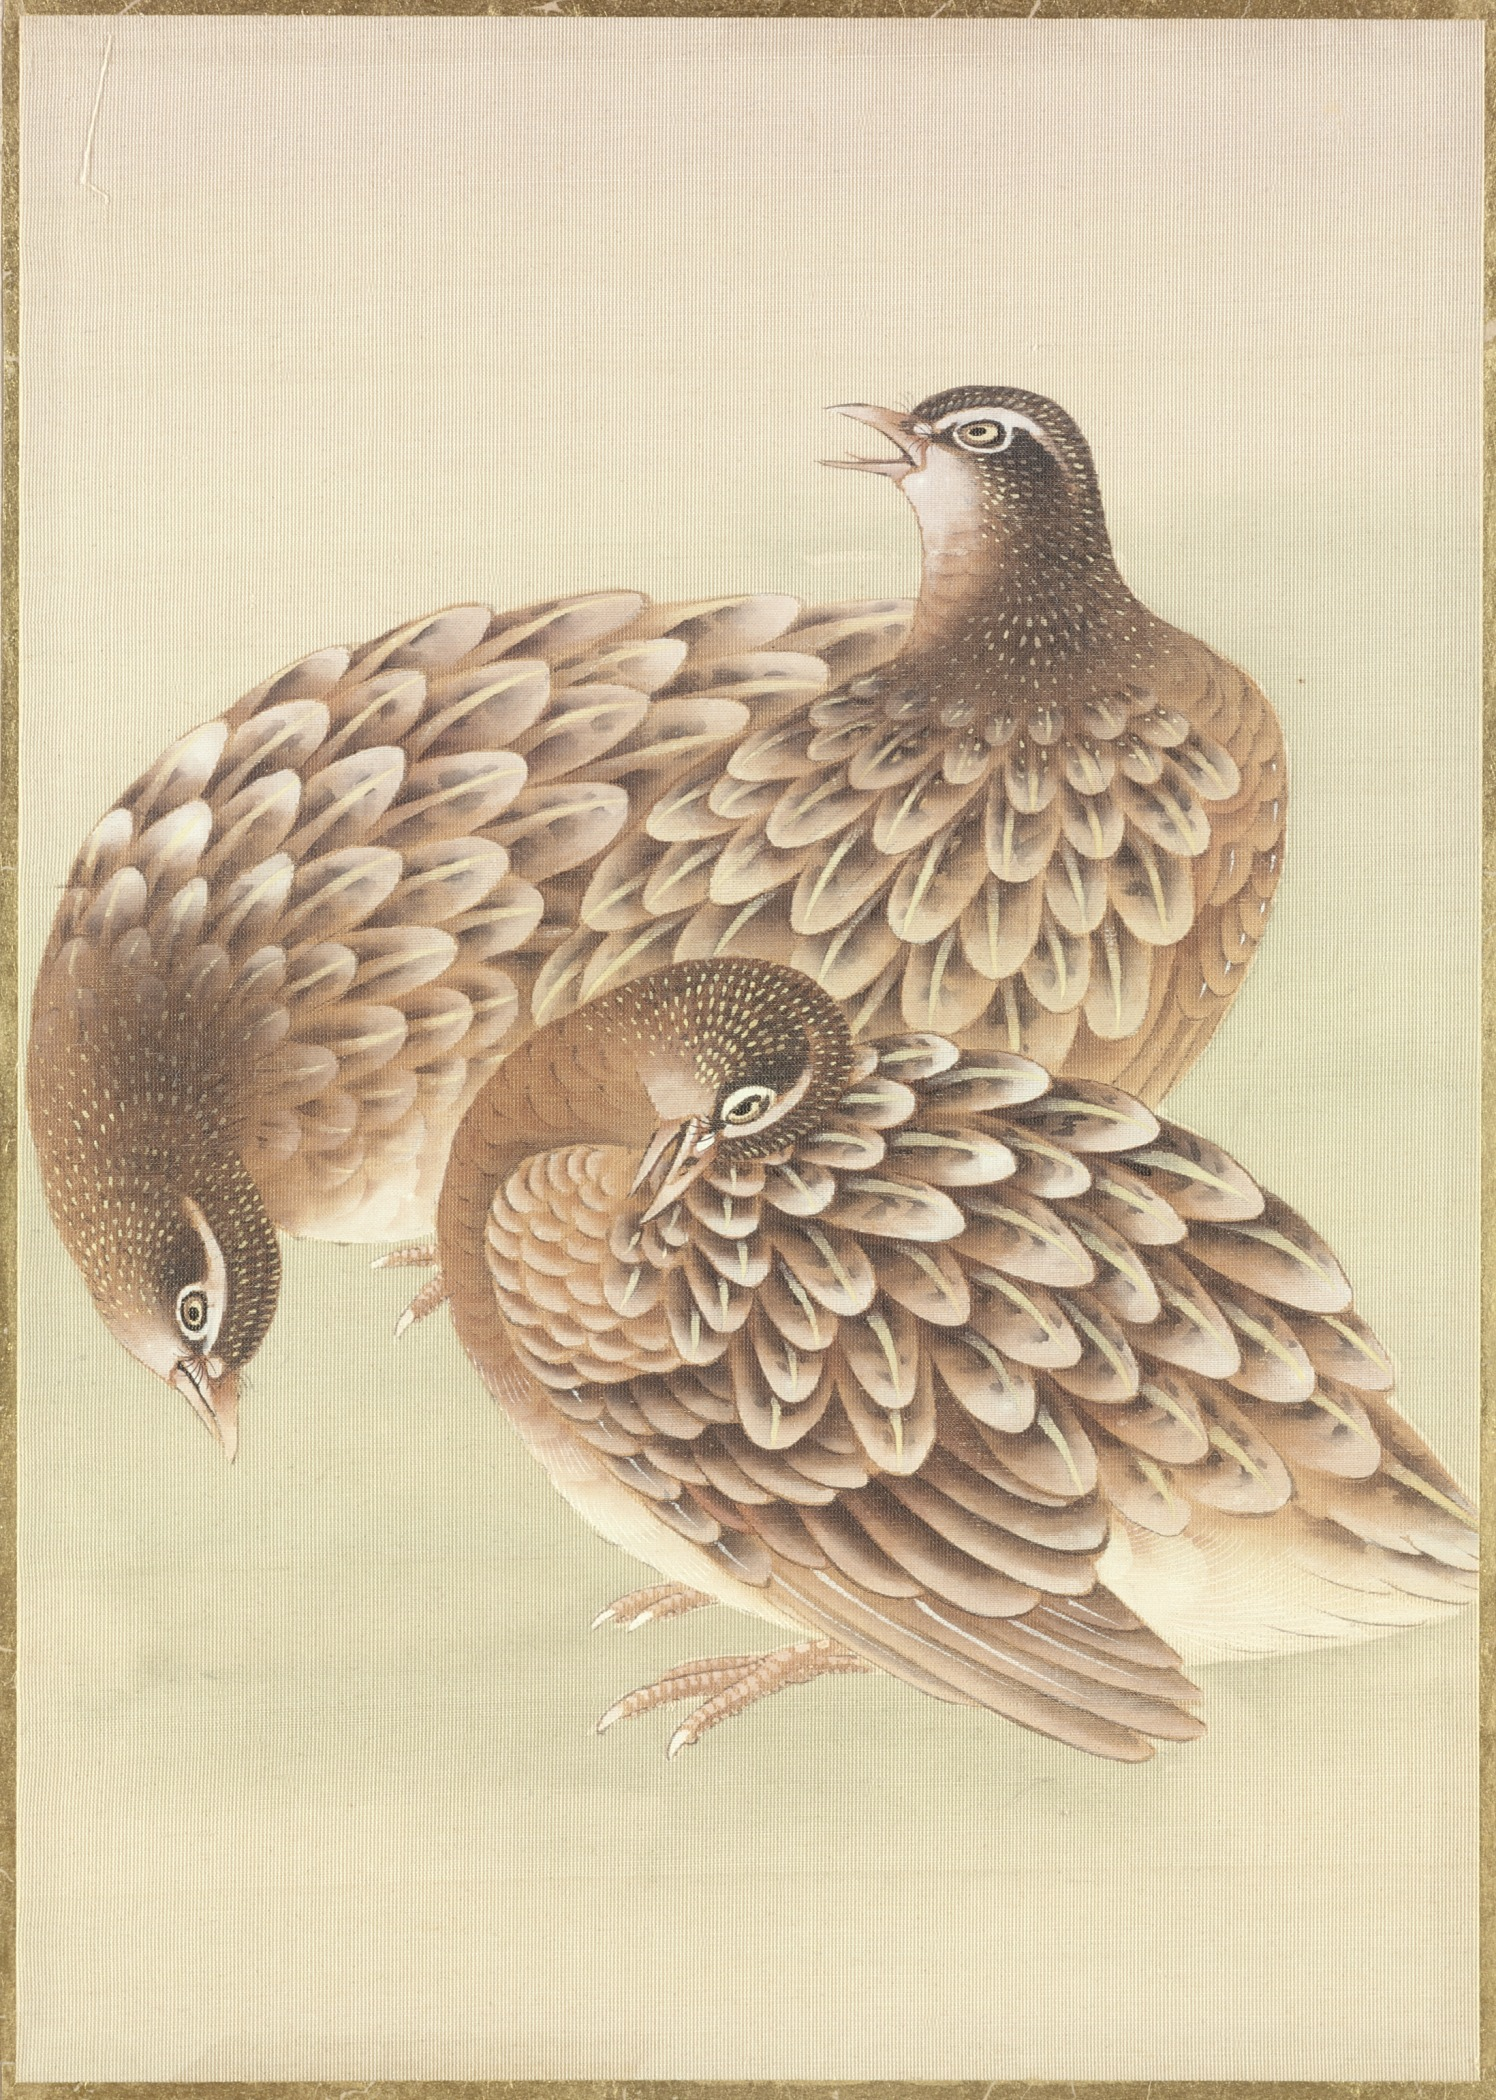 https://upload.wikimedia.org/wikipedia/commons/e/e3/Pictures_of_Flowers_and_Birds_LACMA_M.85.99_%2816_of_25%29.jpg